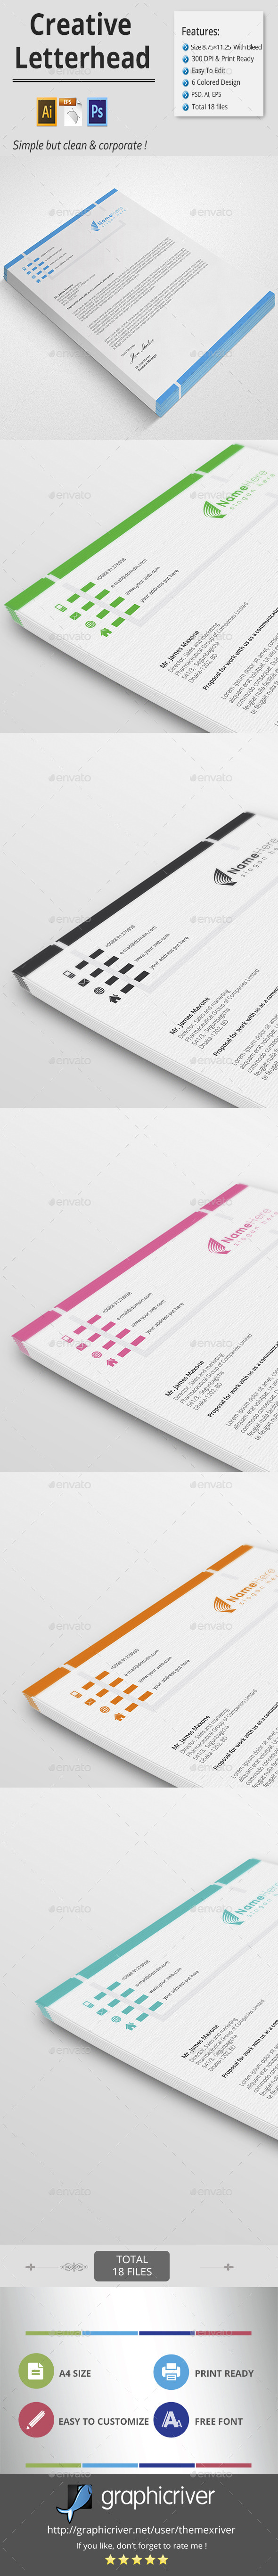 Creative Letterhead - Stationery Print Templates